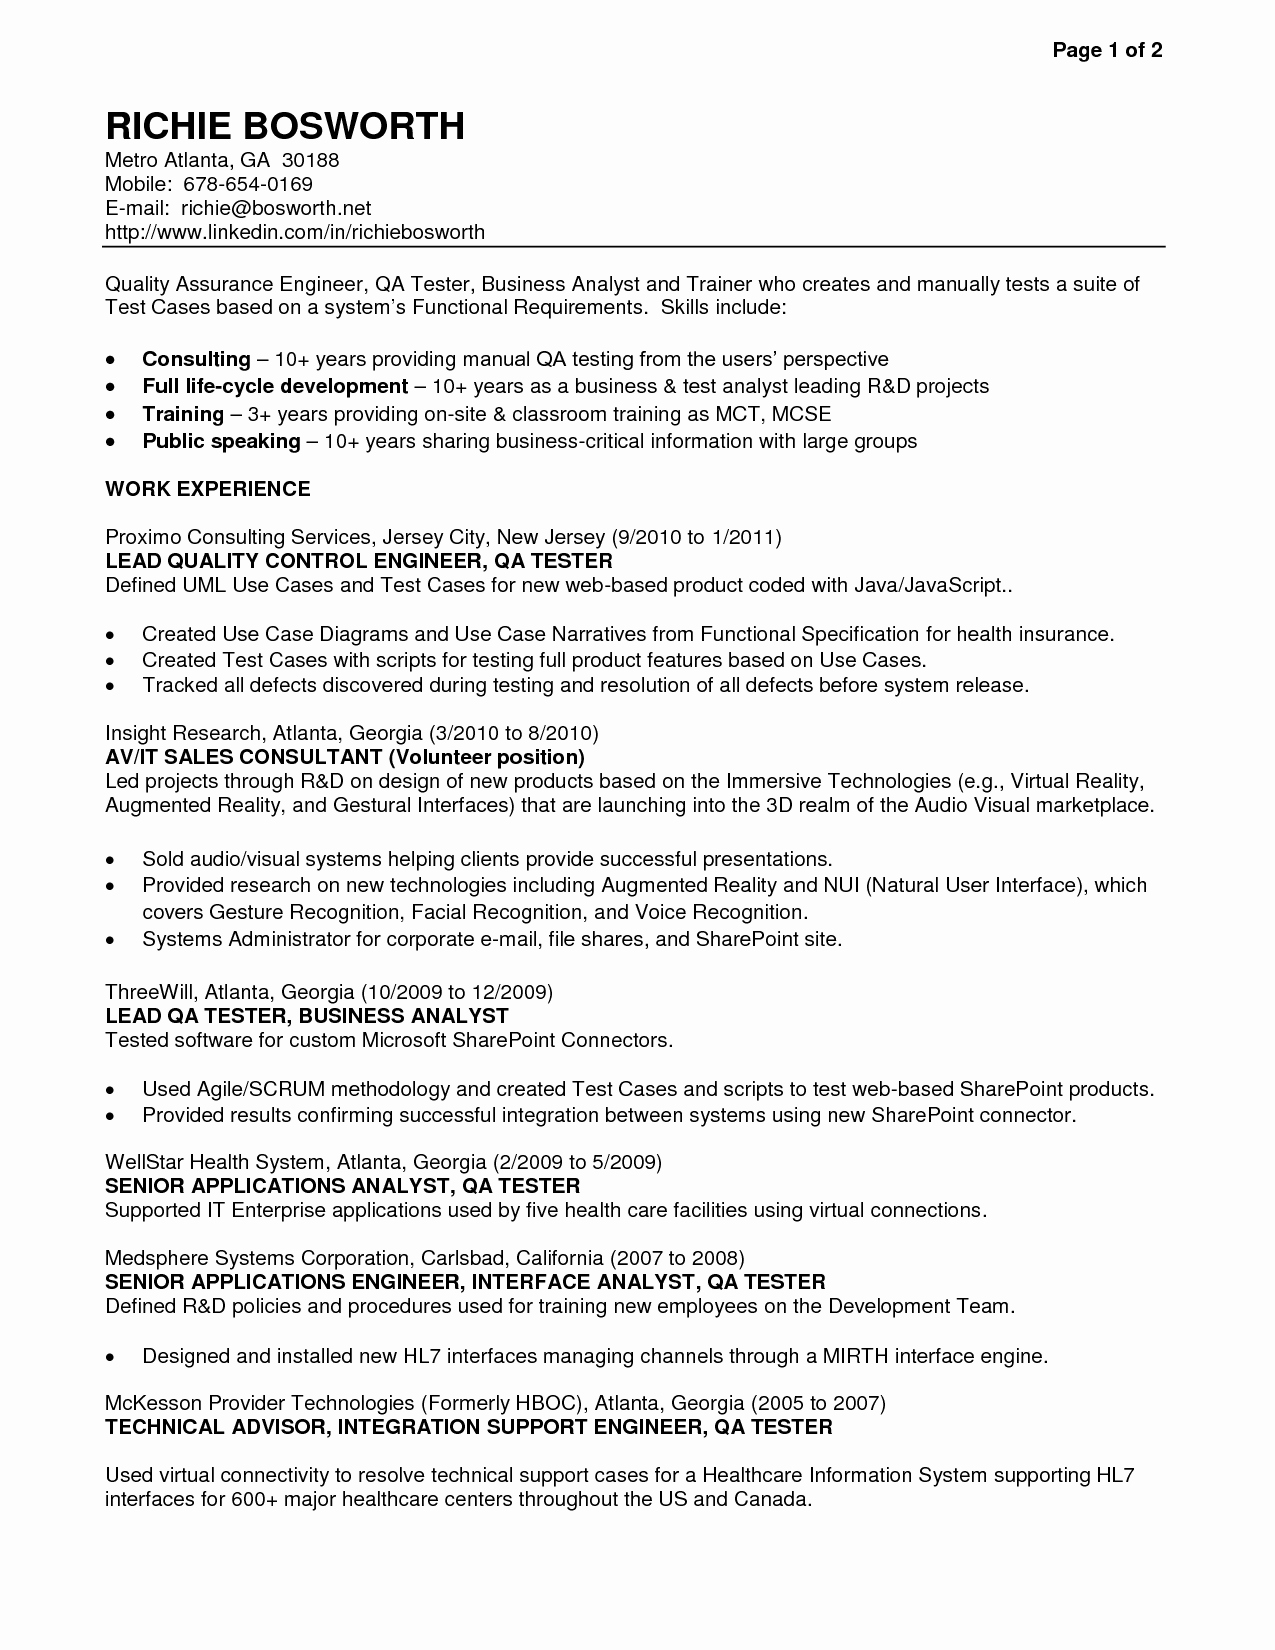 Cover Letter for Qa Tester Cover Letter Samples Cover